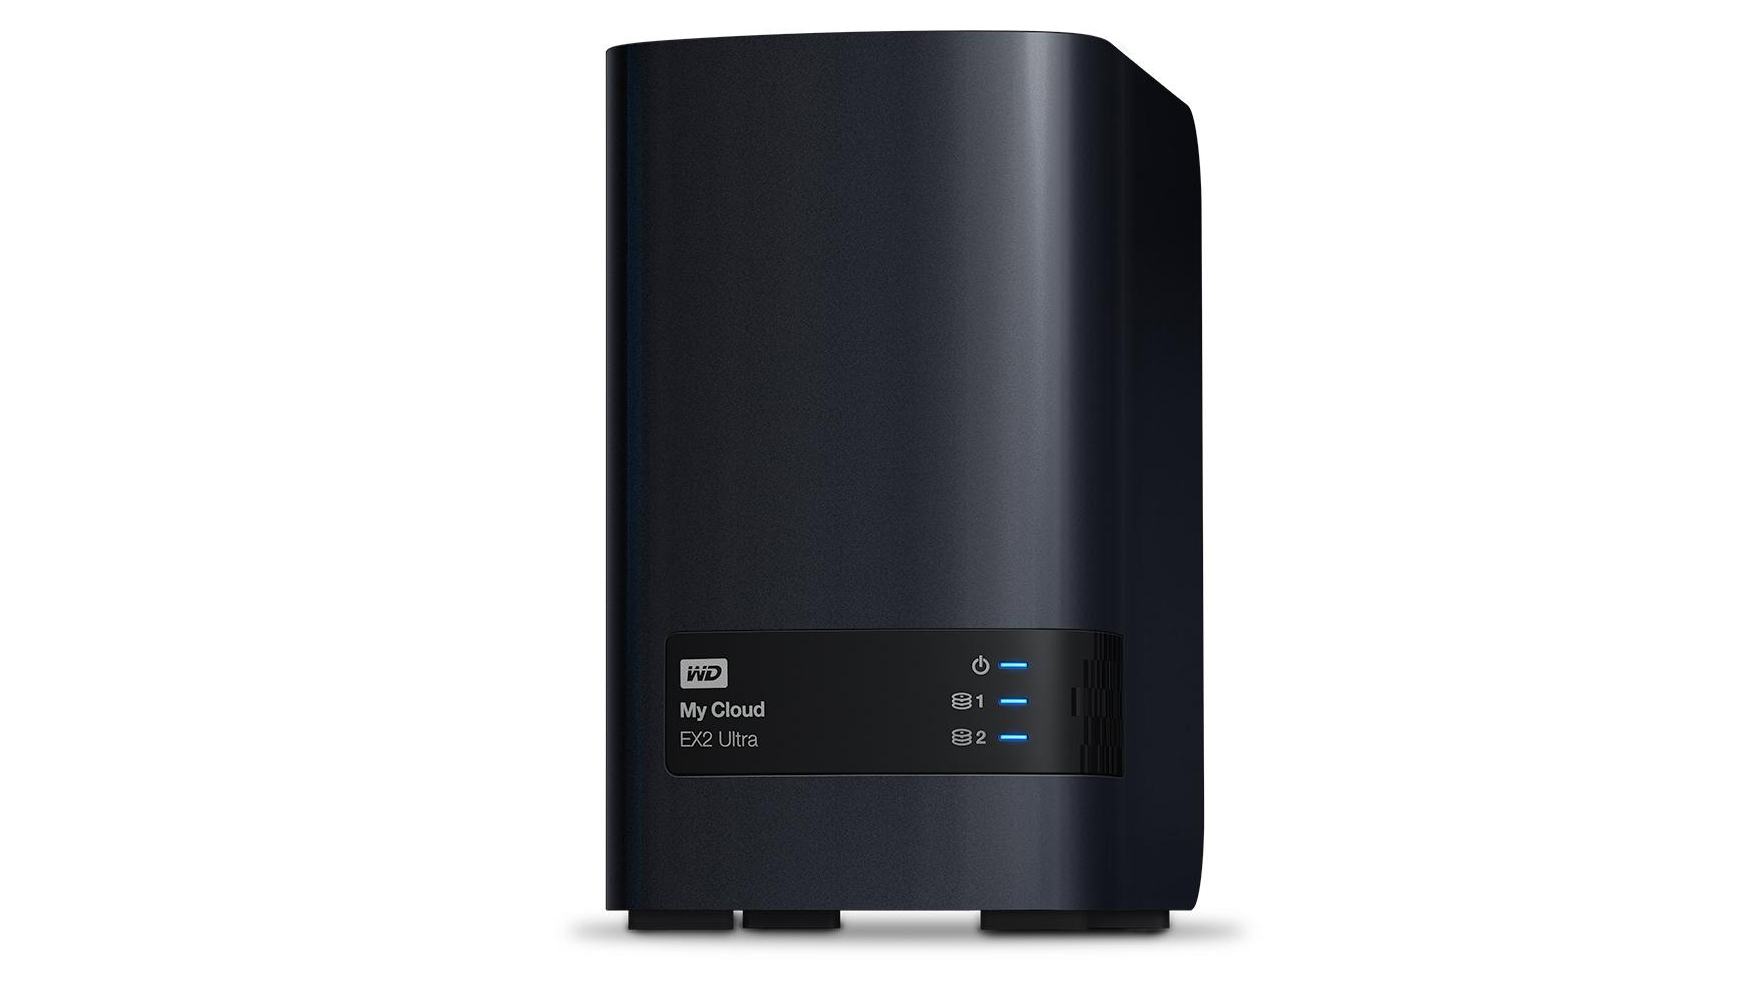 WD My Cloud EX2 Ultra NAS drive